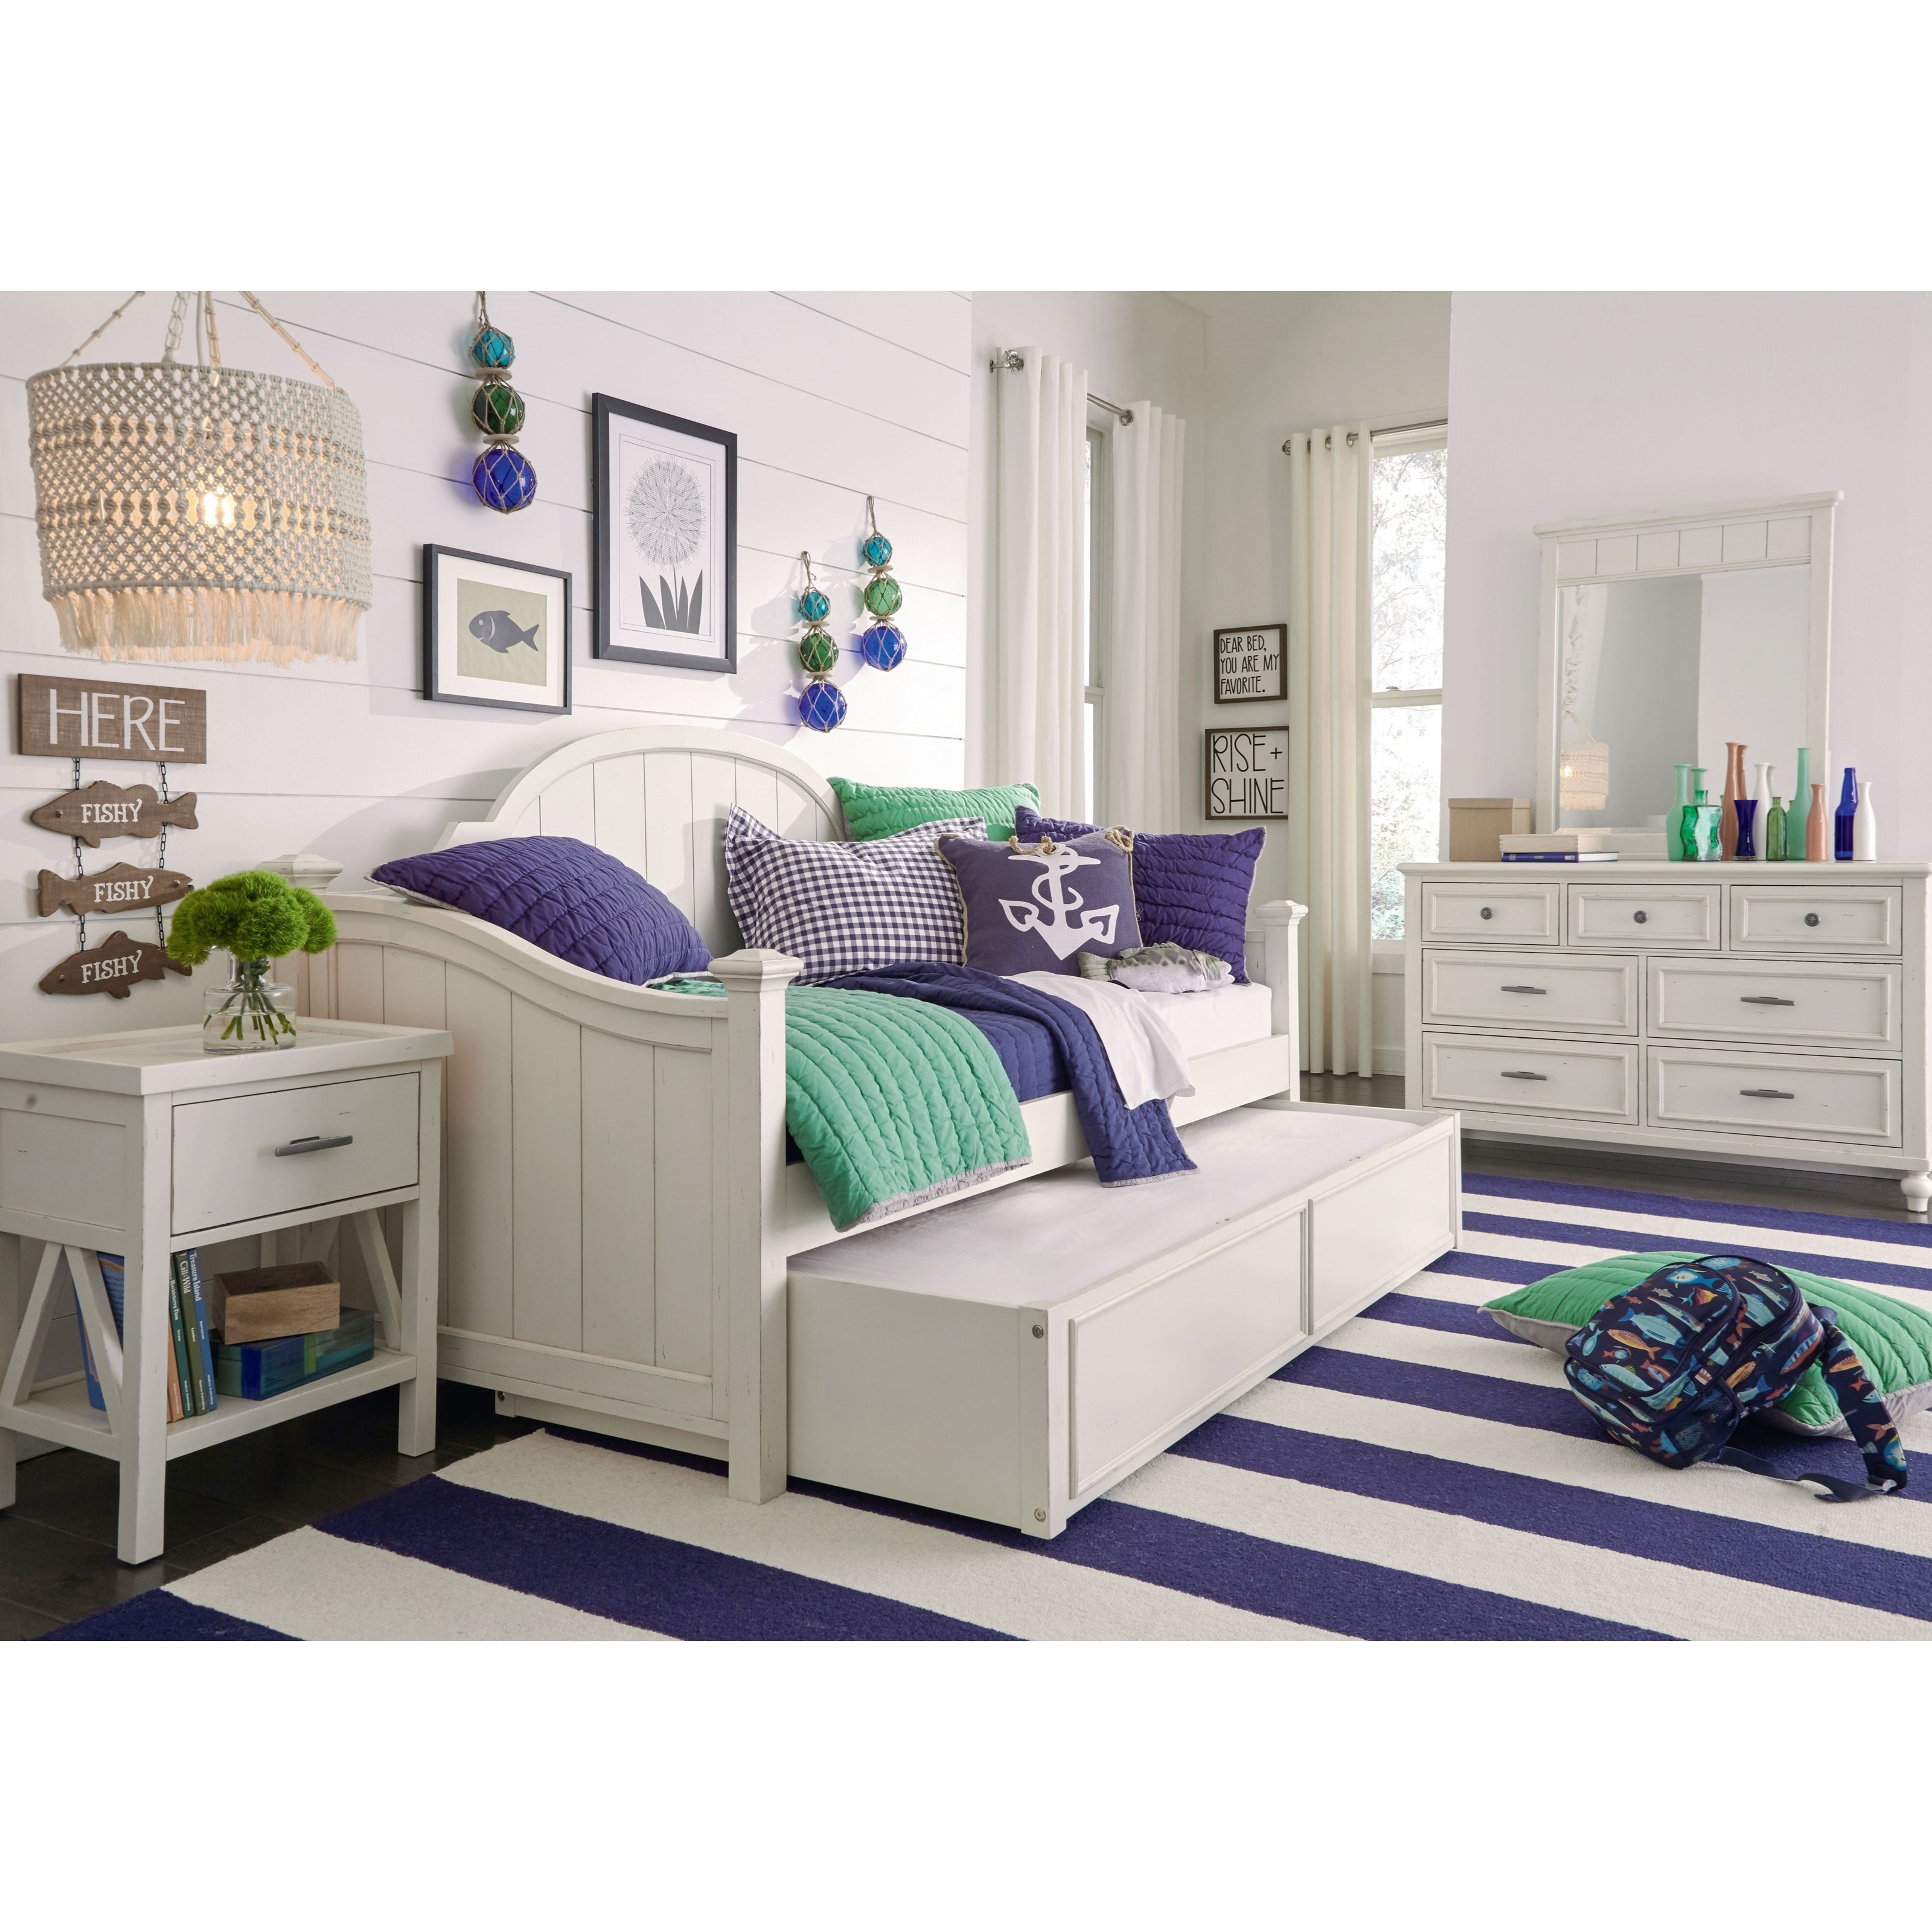 Lake House Twin Daybed Bedroom Group by Legacy Classic Kids at Pilgrim Furniture City